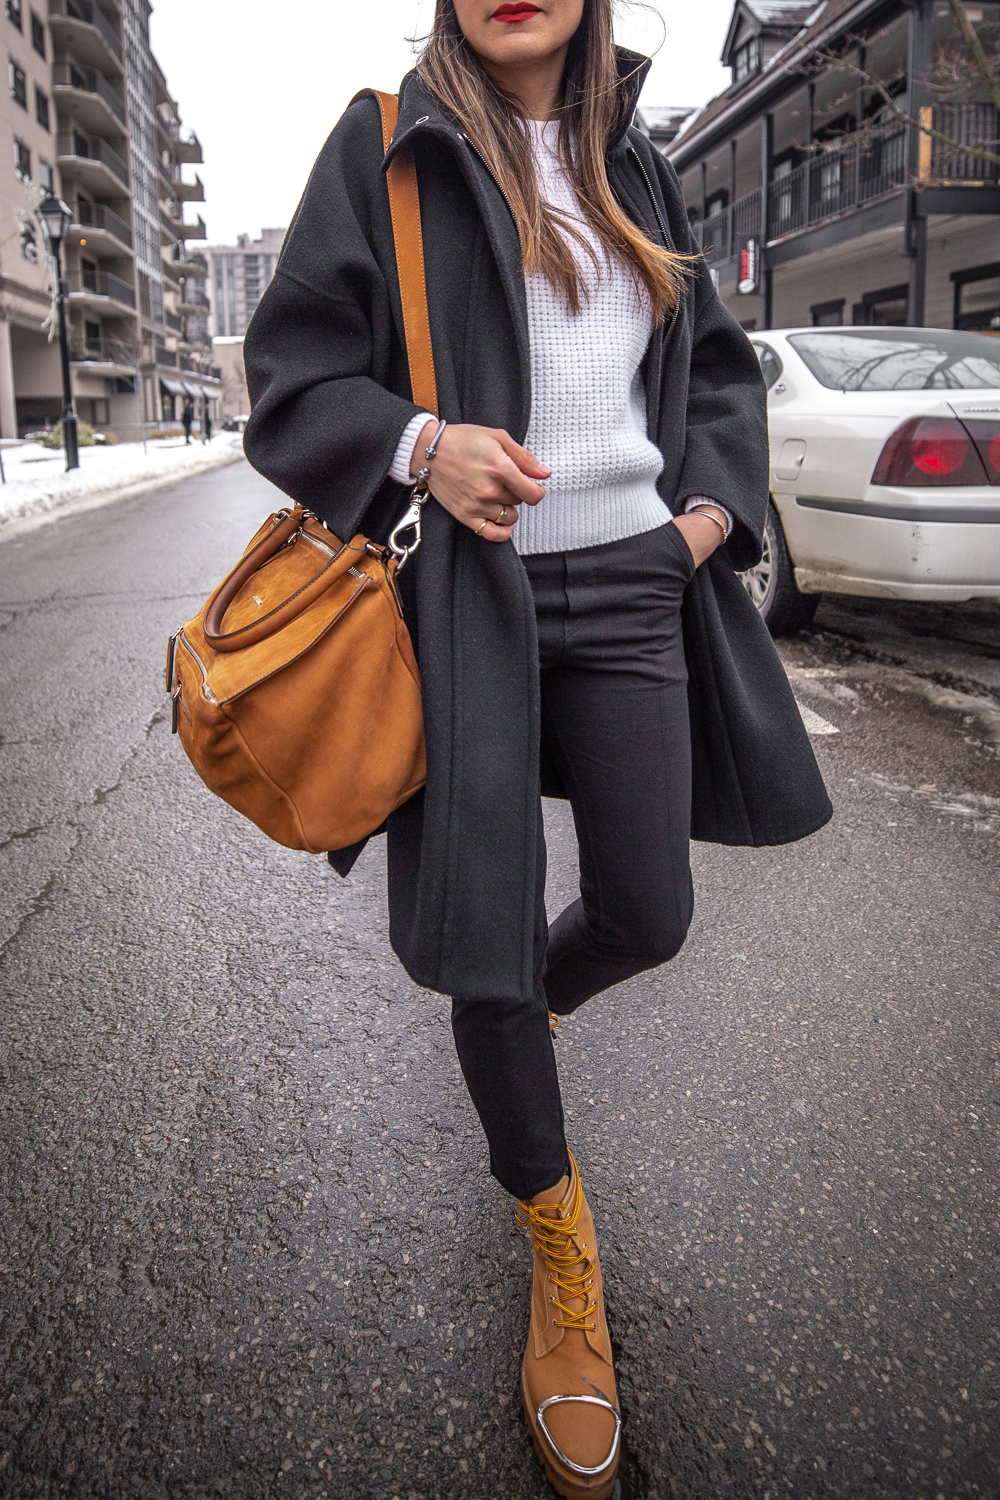 nathalie martin - vince wool coat, acne studios white sweater, pansy beanie, frank and eileen trouser joggers, alexander wang lyndon boots, givenchy medium pandora, bonlook jerry glasses, pinterest @woahstyle_7277.jpg